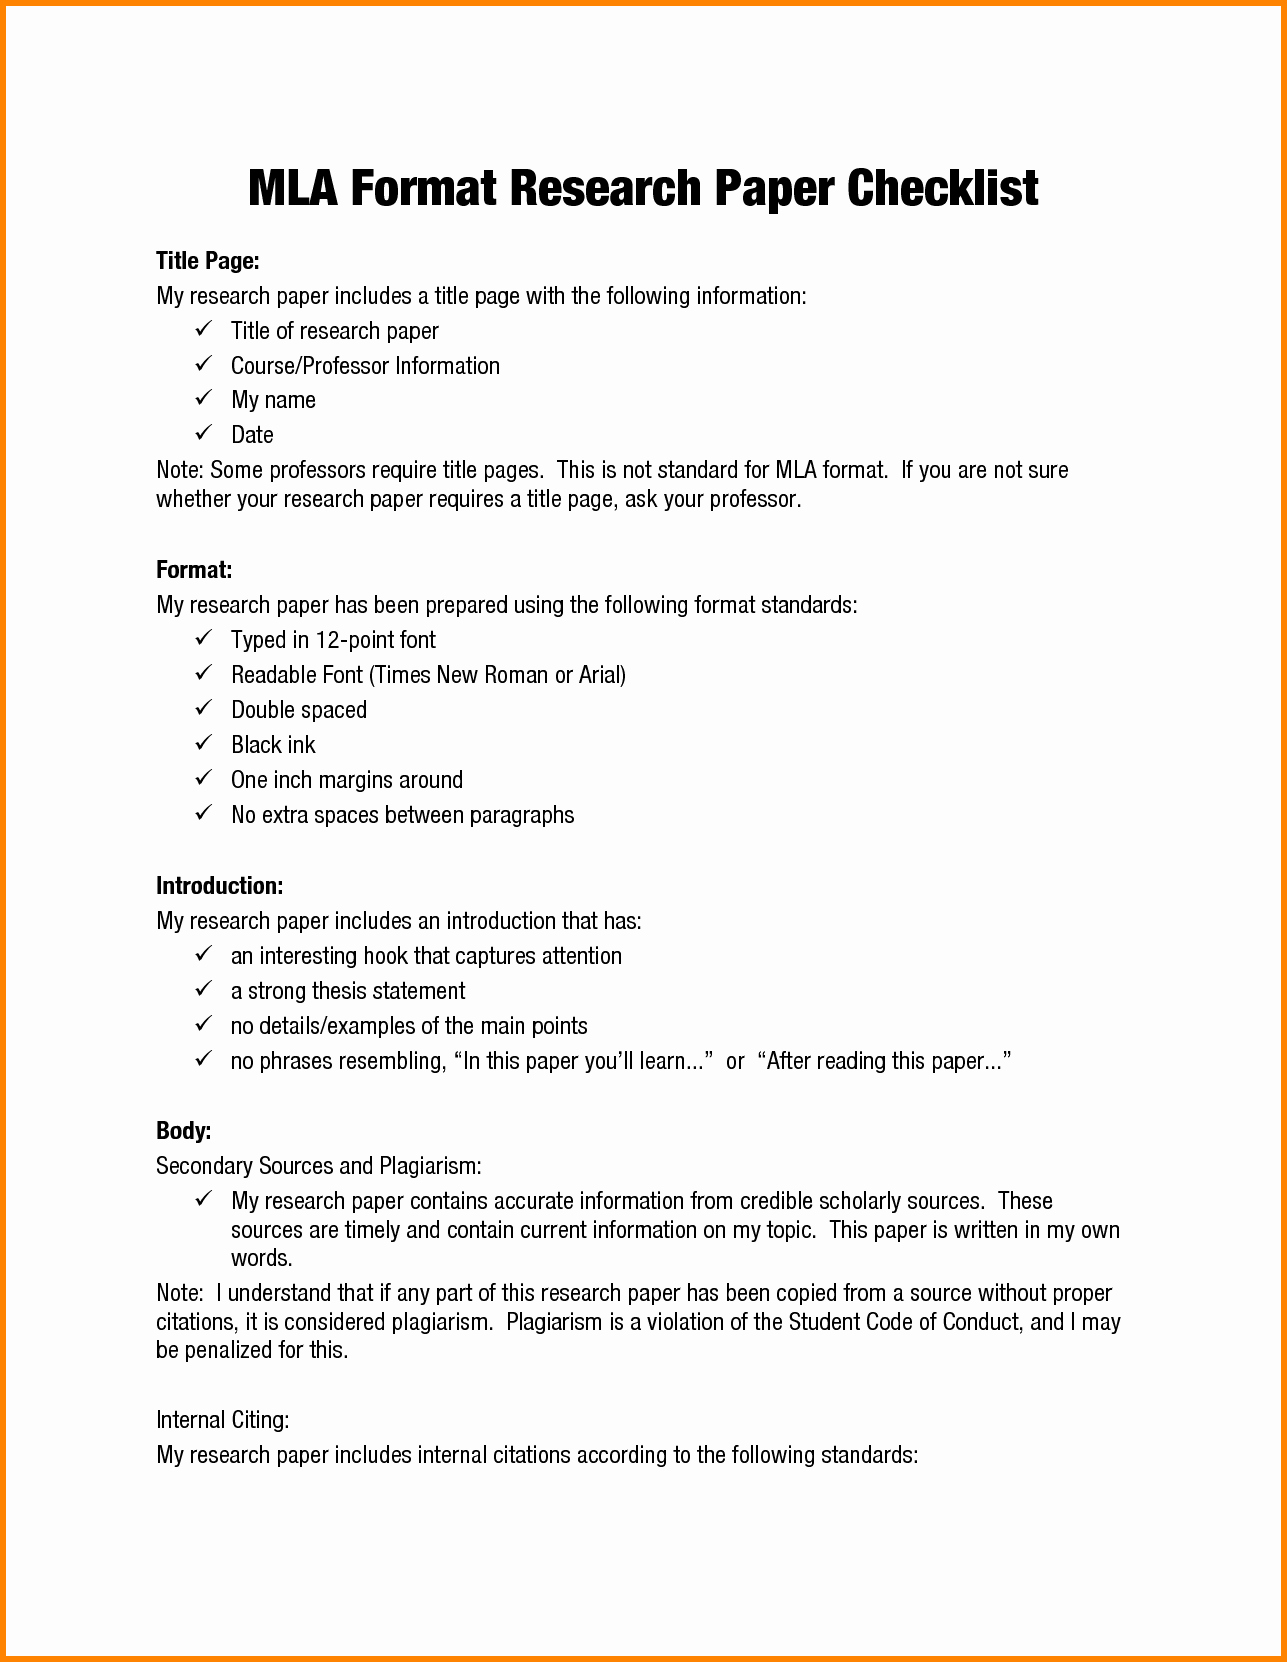 009 Research Paper Mla Style Format Inspirational Sample Titles Bamboodownunder Of Cover Singular Page Title Example With Full